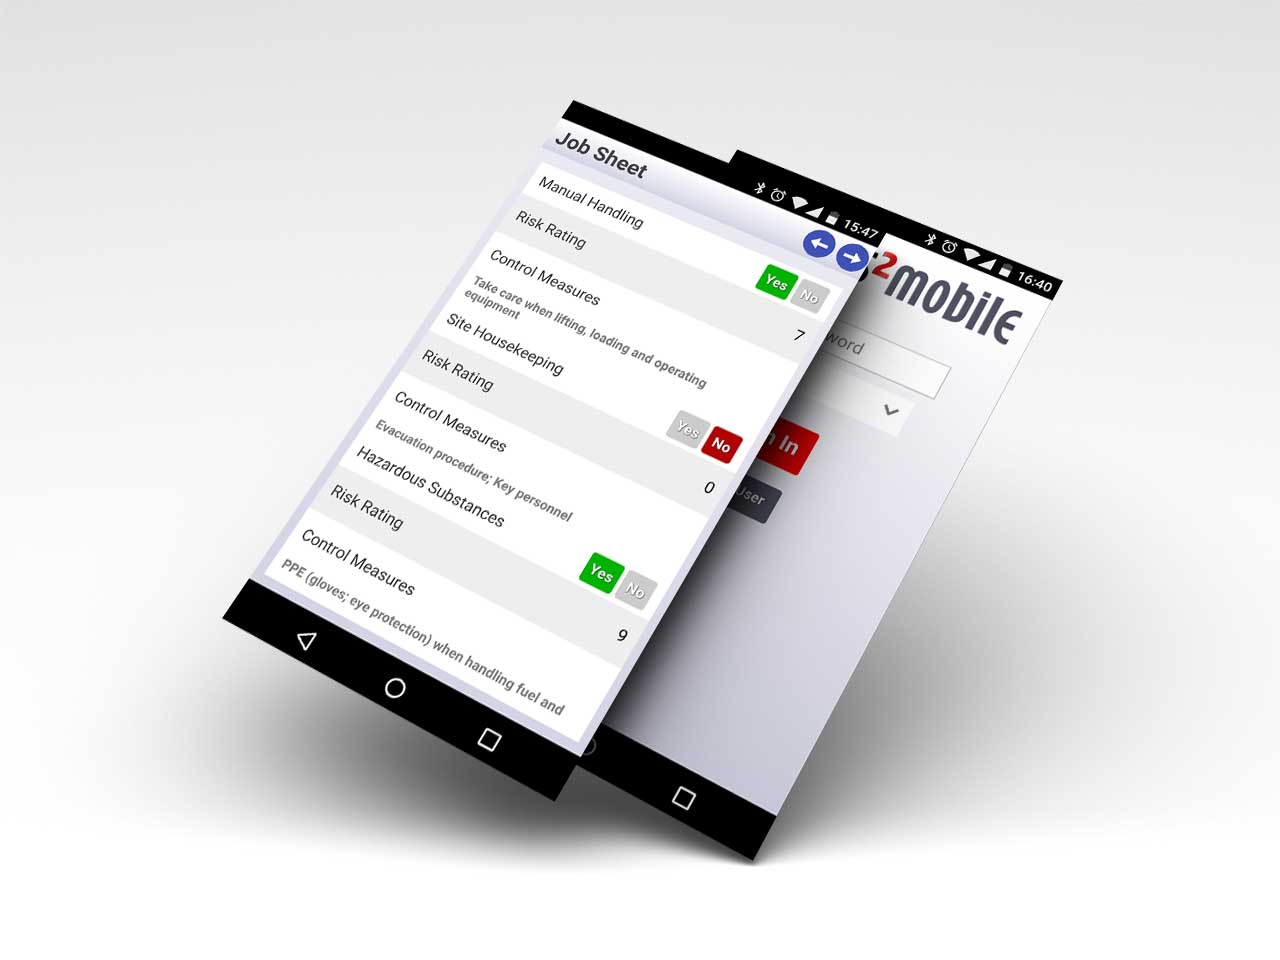 Send tasks to workers in field services to complete mobile forms